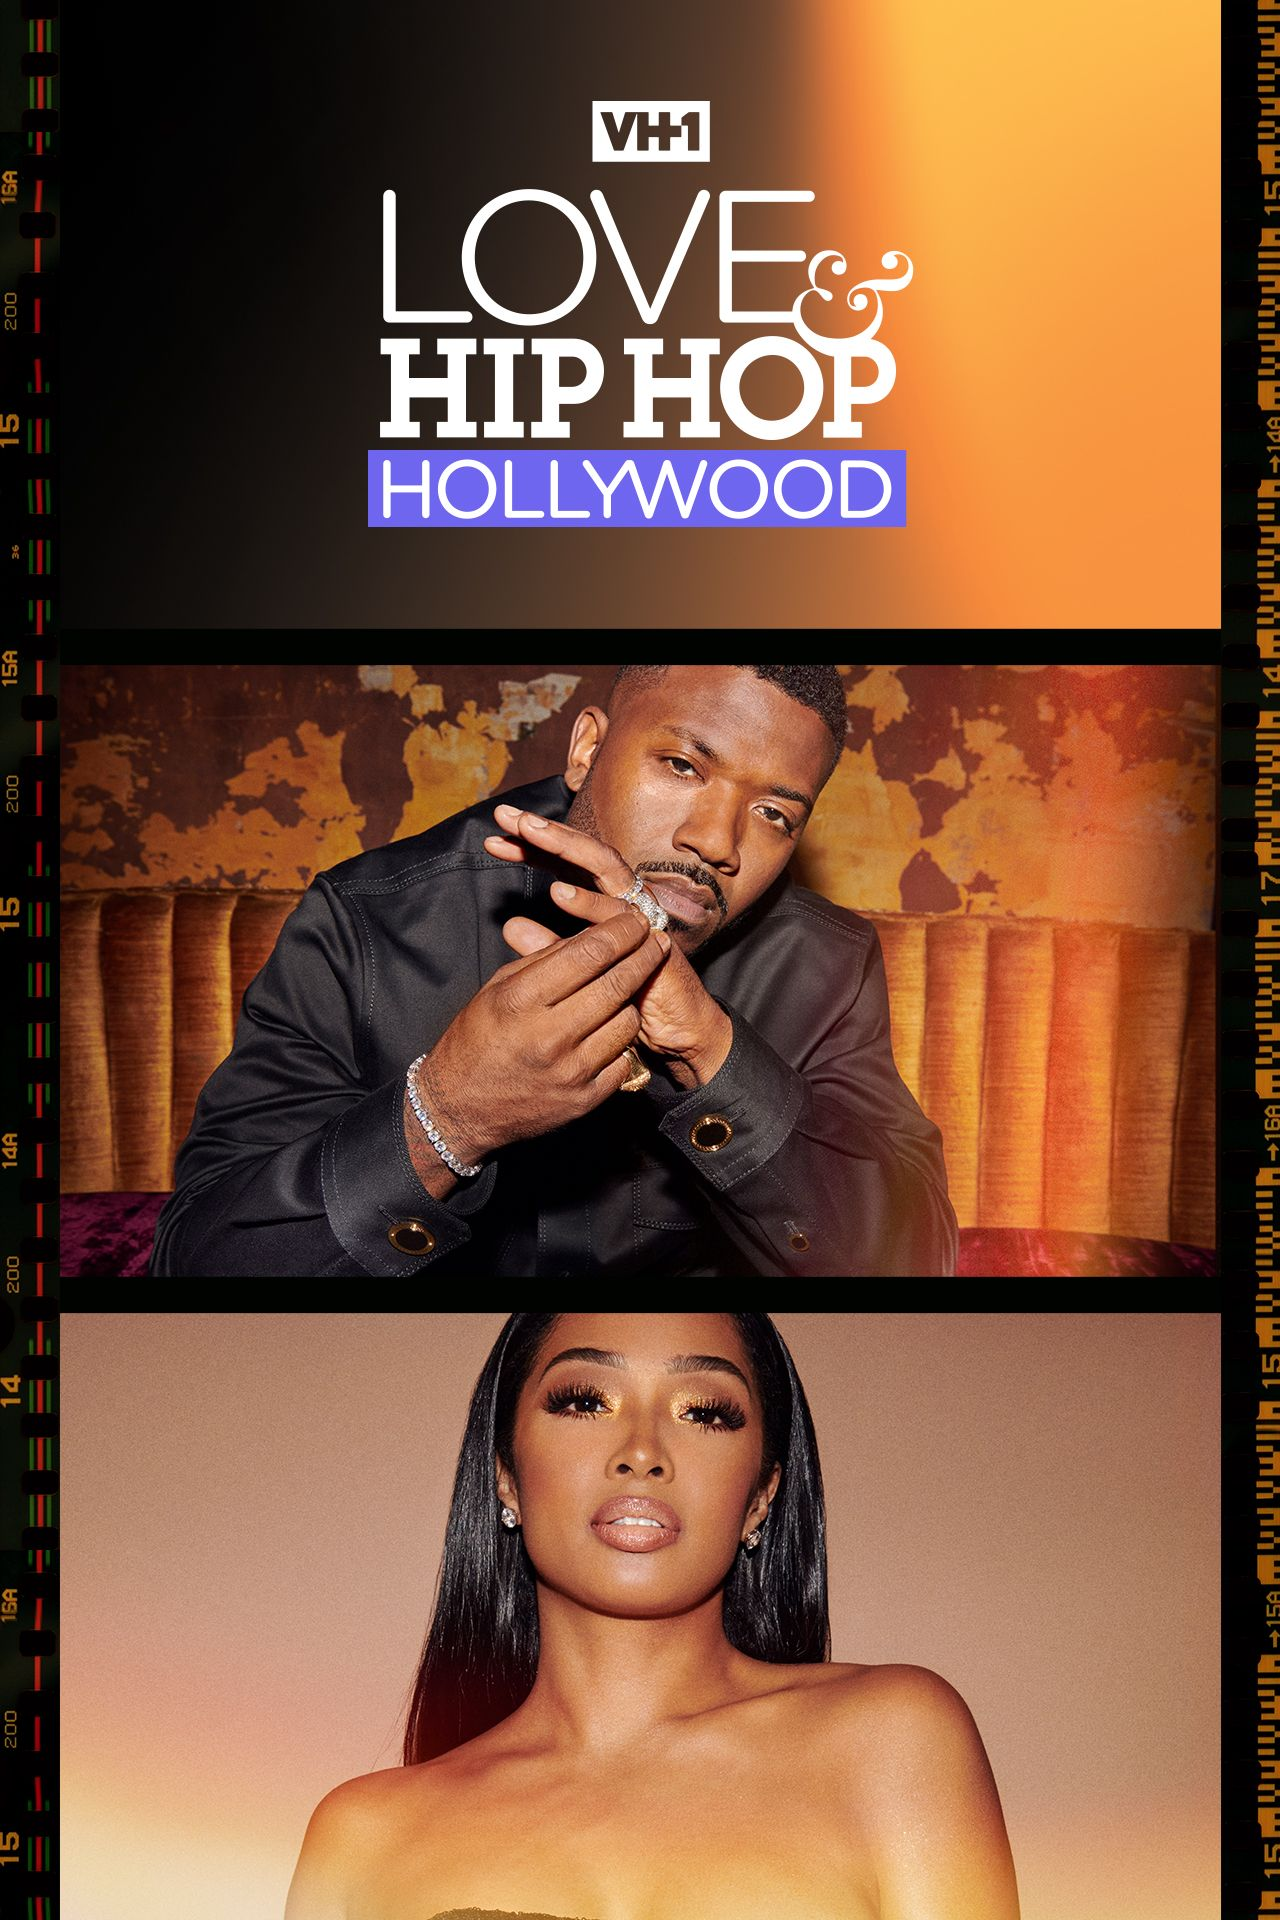 Love & Hip Hop Hollywood | Season 6 Episodes (TV Series) | VH1